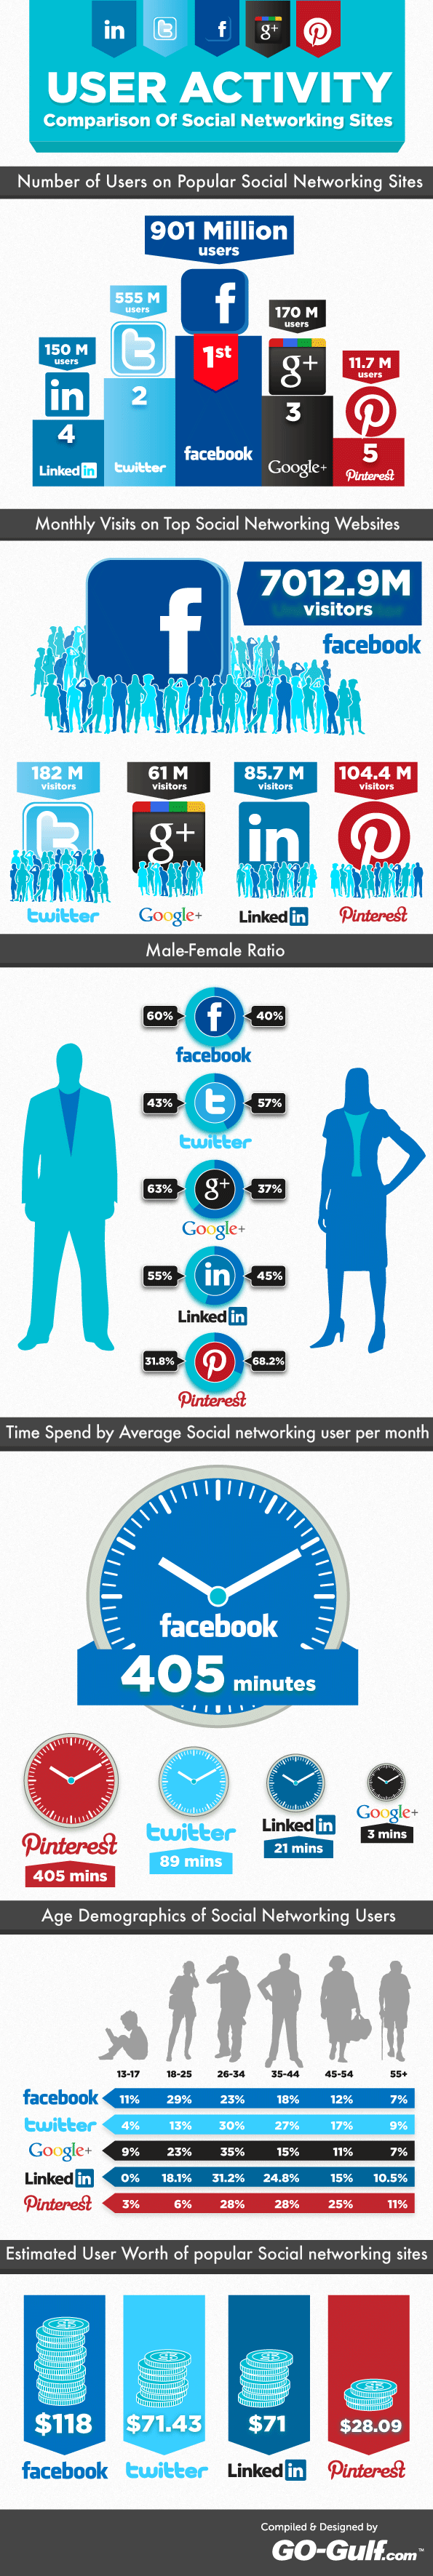 Comparing User Activity Across Social Services [Infographic]